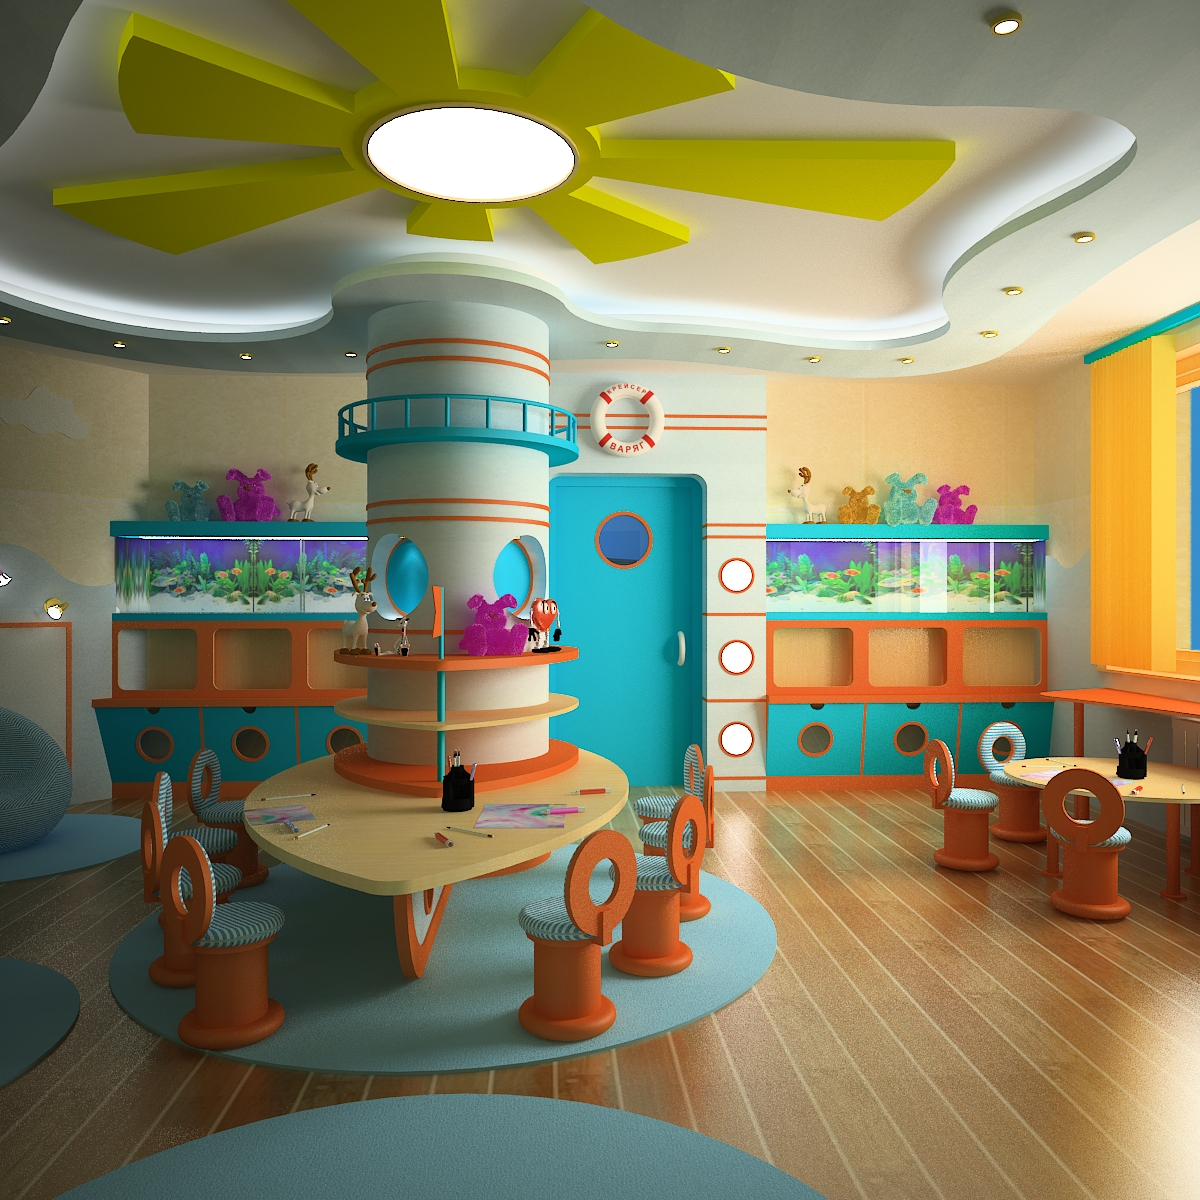 Play furniture for kindergarten - photos and ideas how to decorate the garden